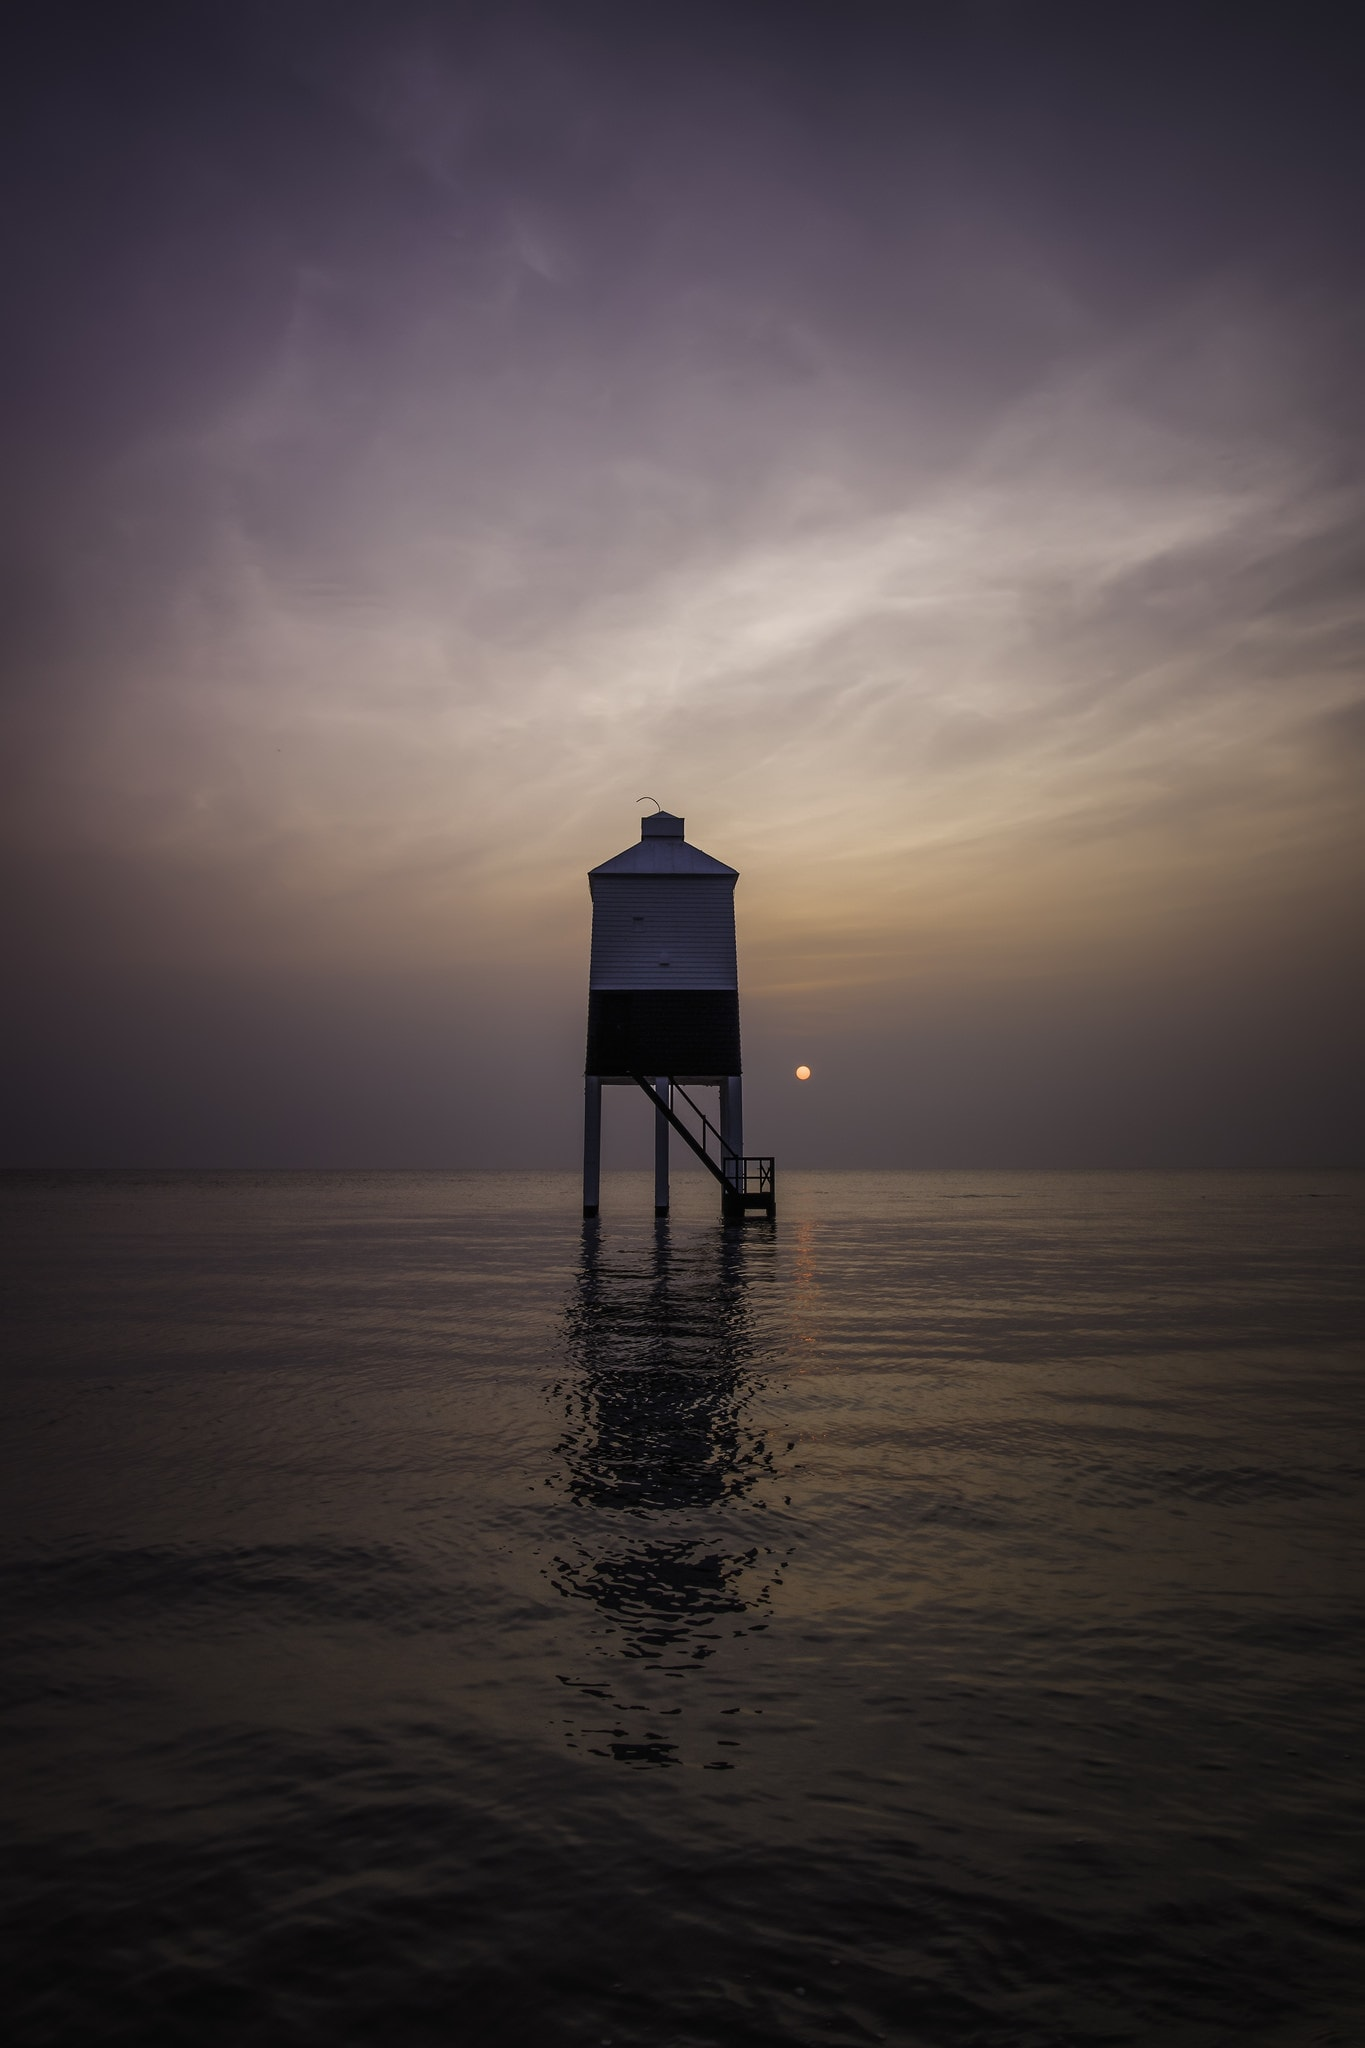 Lighthouse on stilts surrounded by water